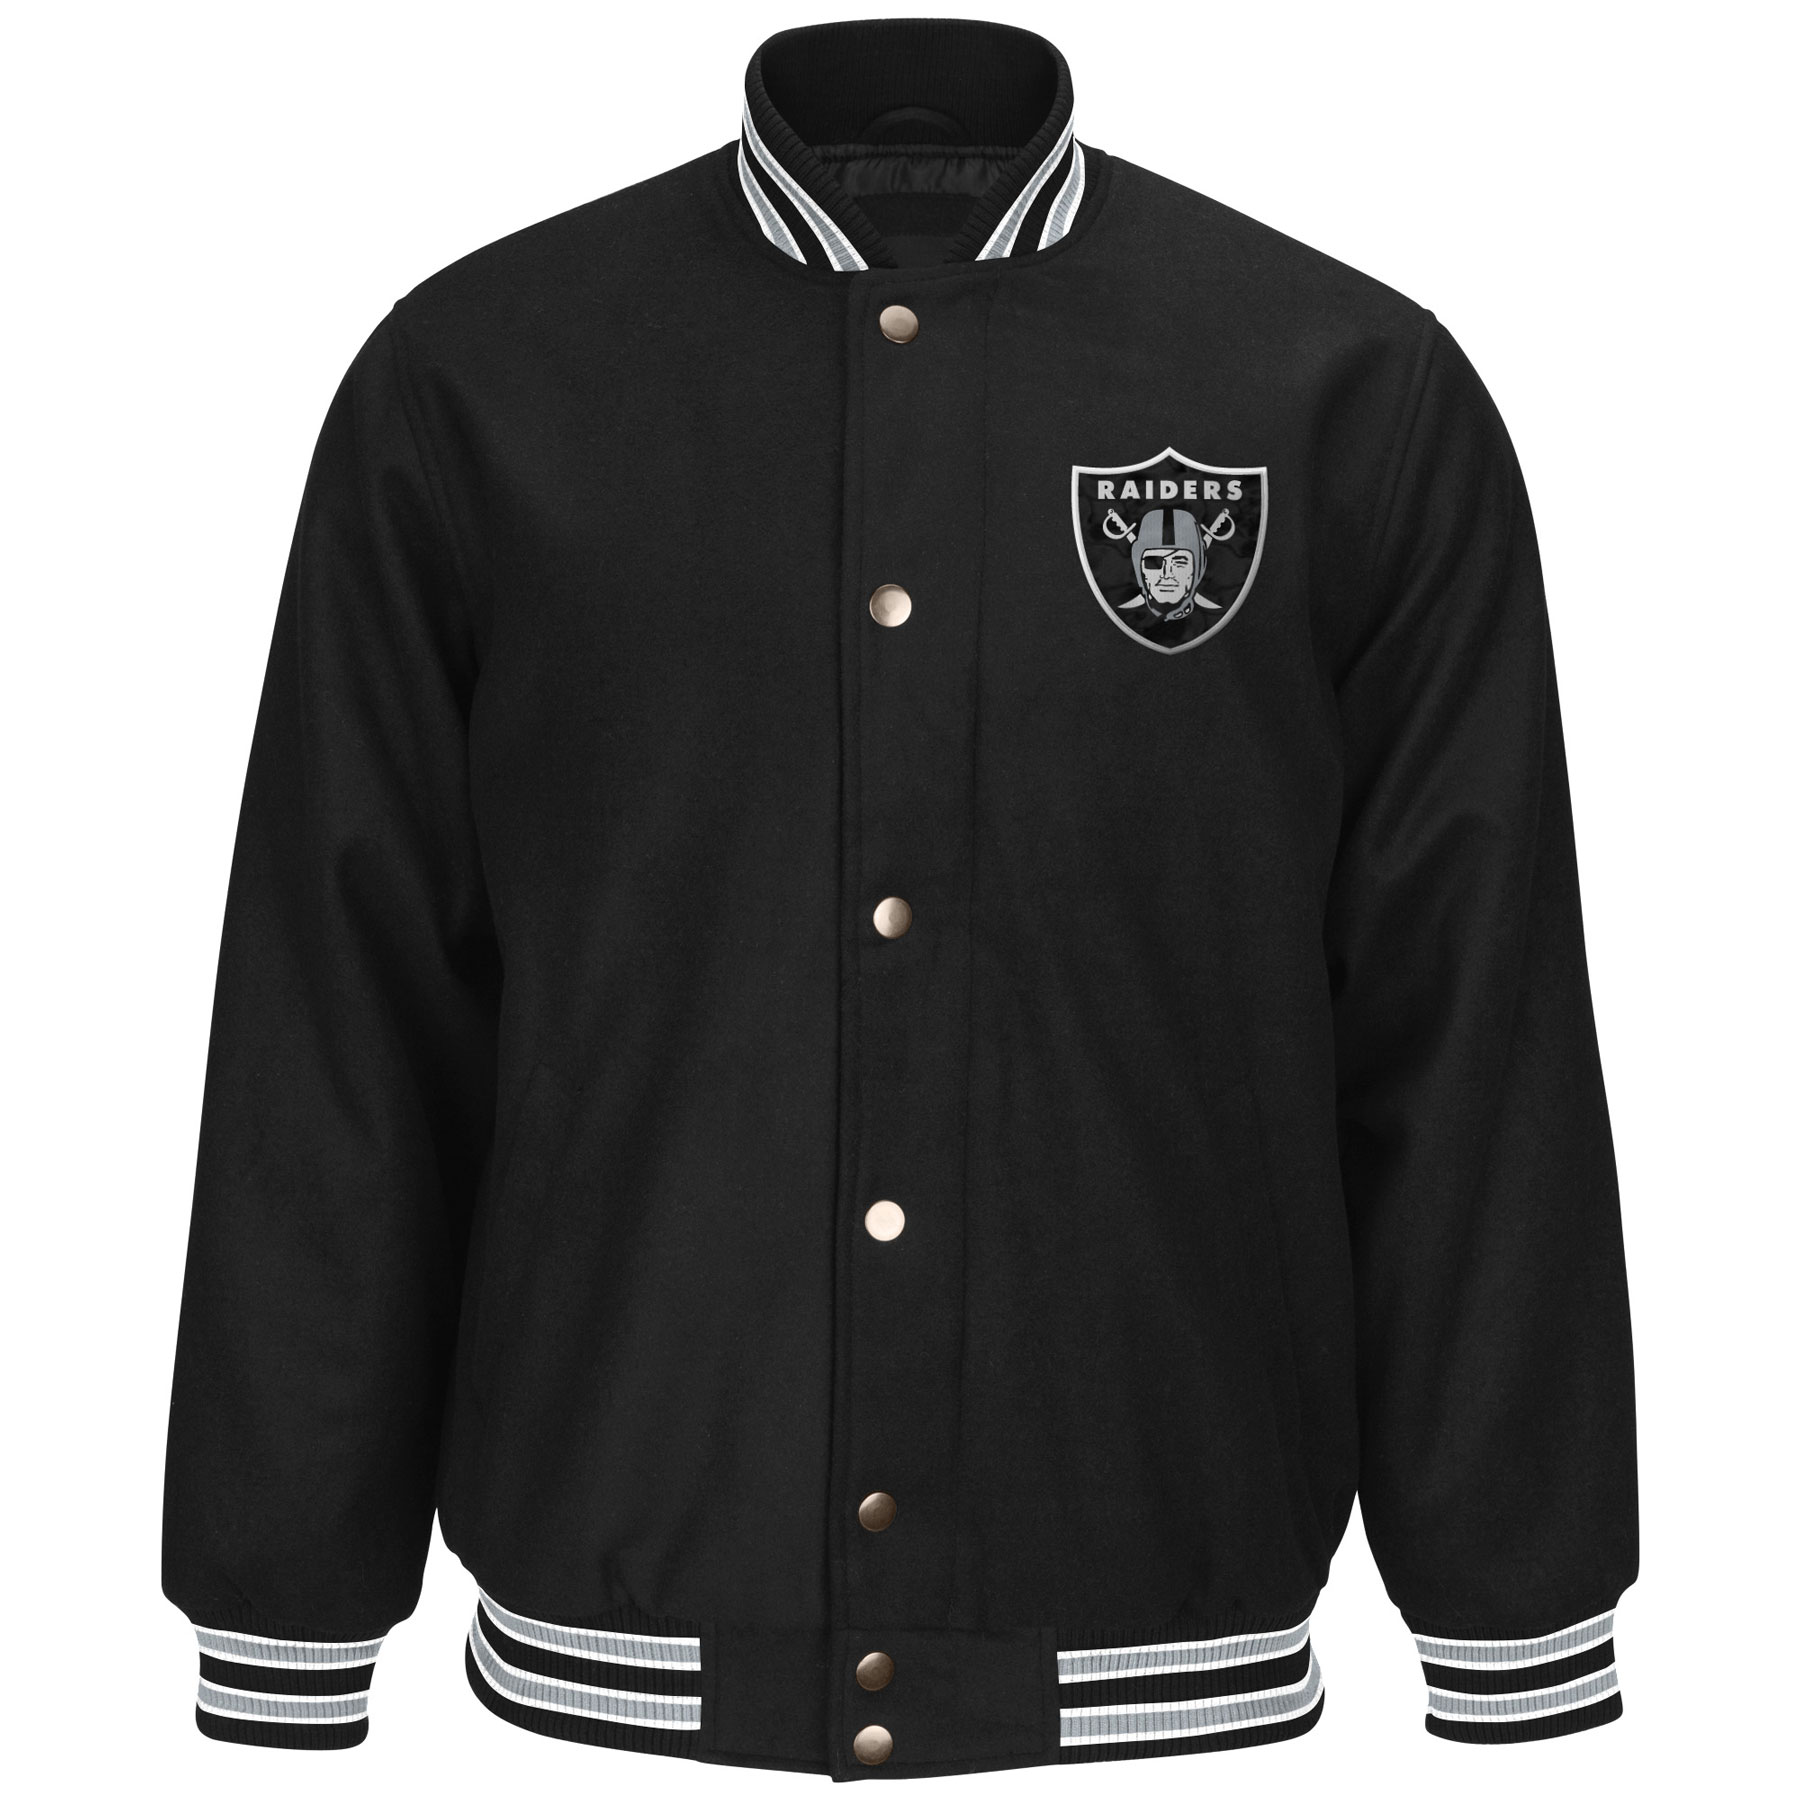 Raiders Letterman Jacket | Golden State Warriors Letterman Jacket | Varsity Jacket Raiders